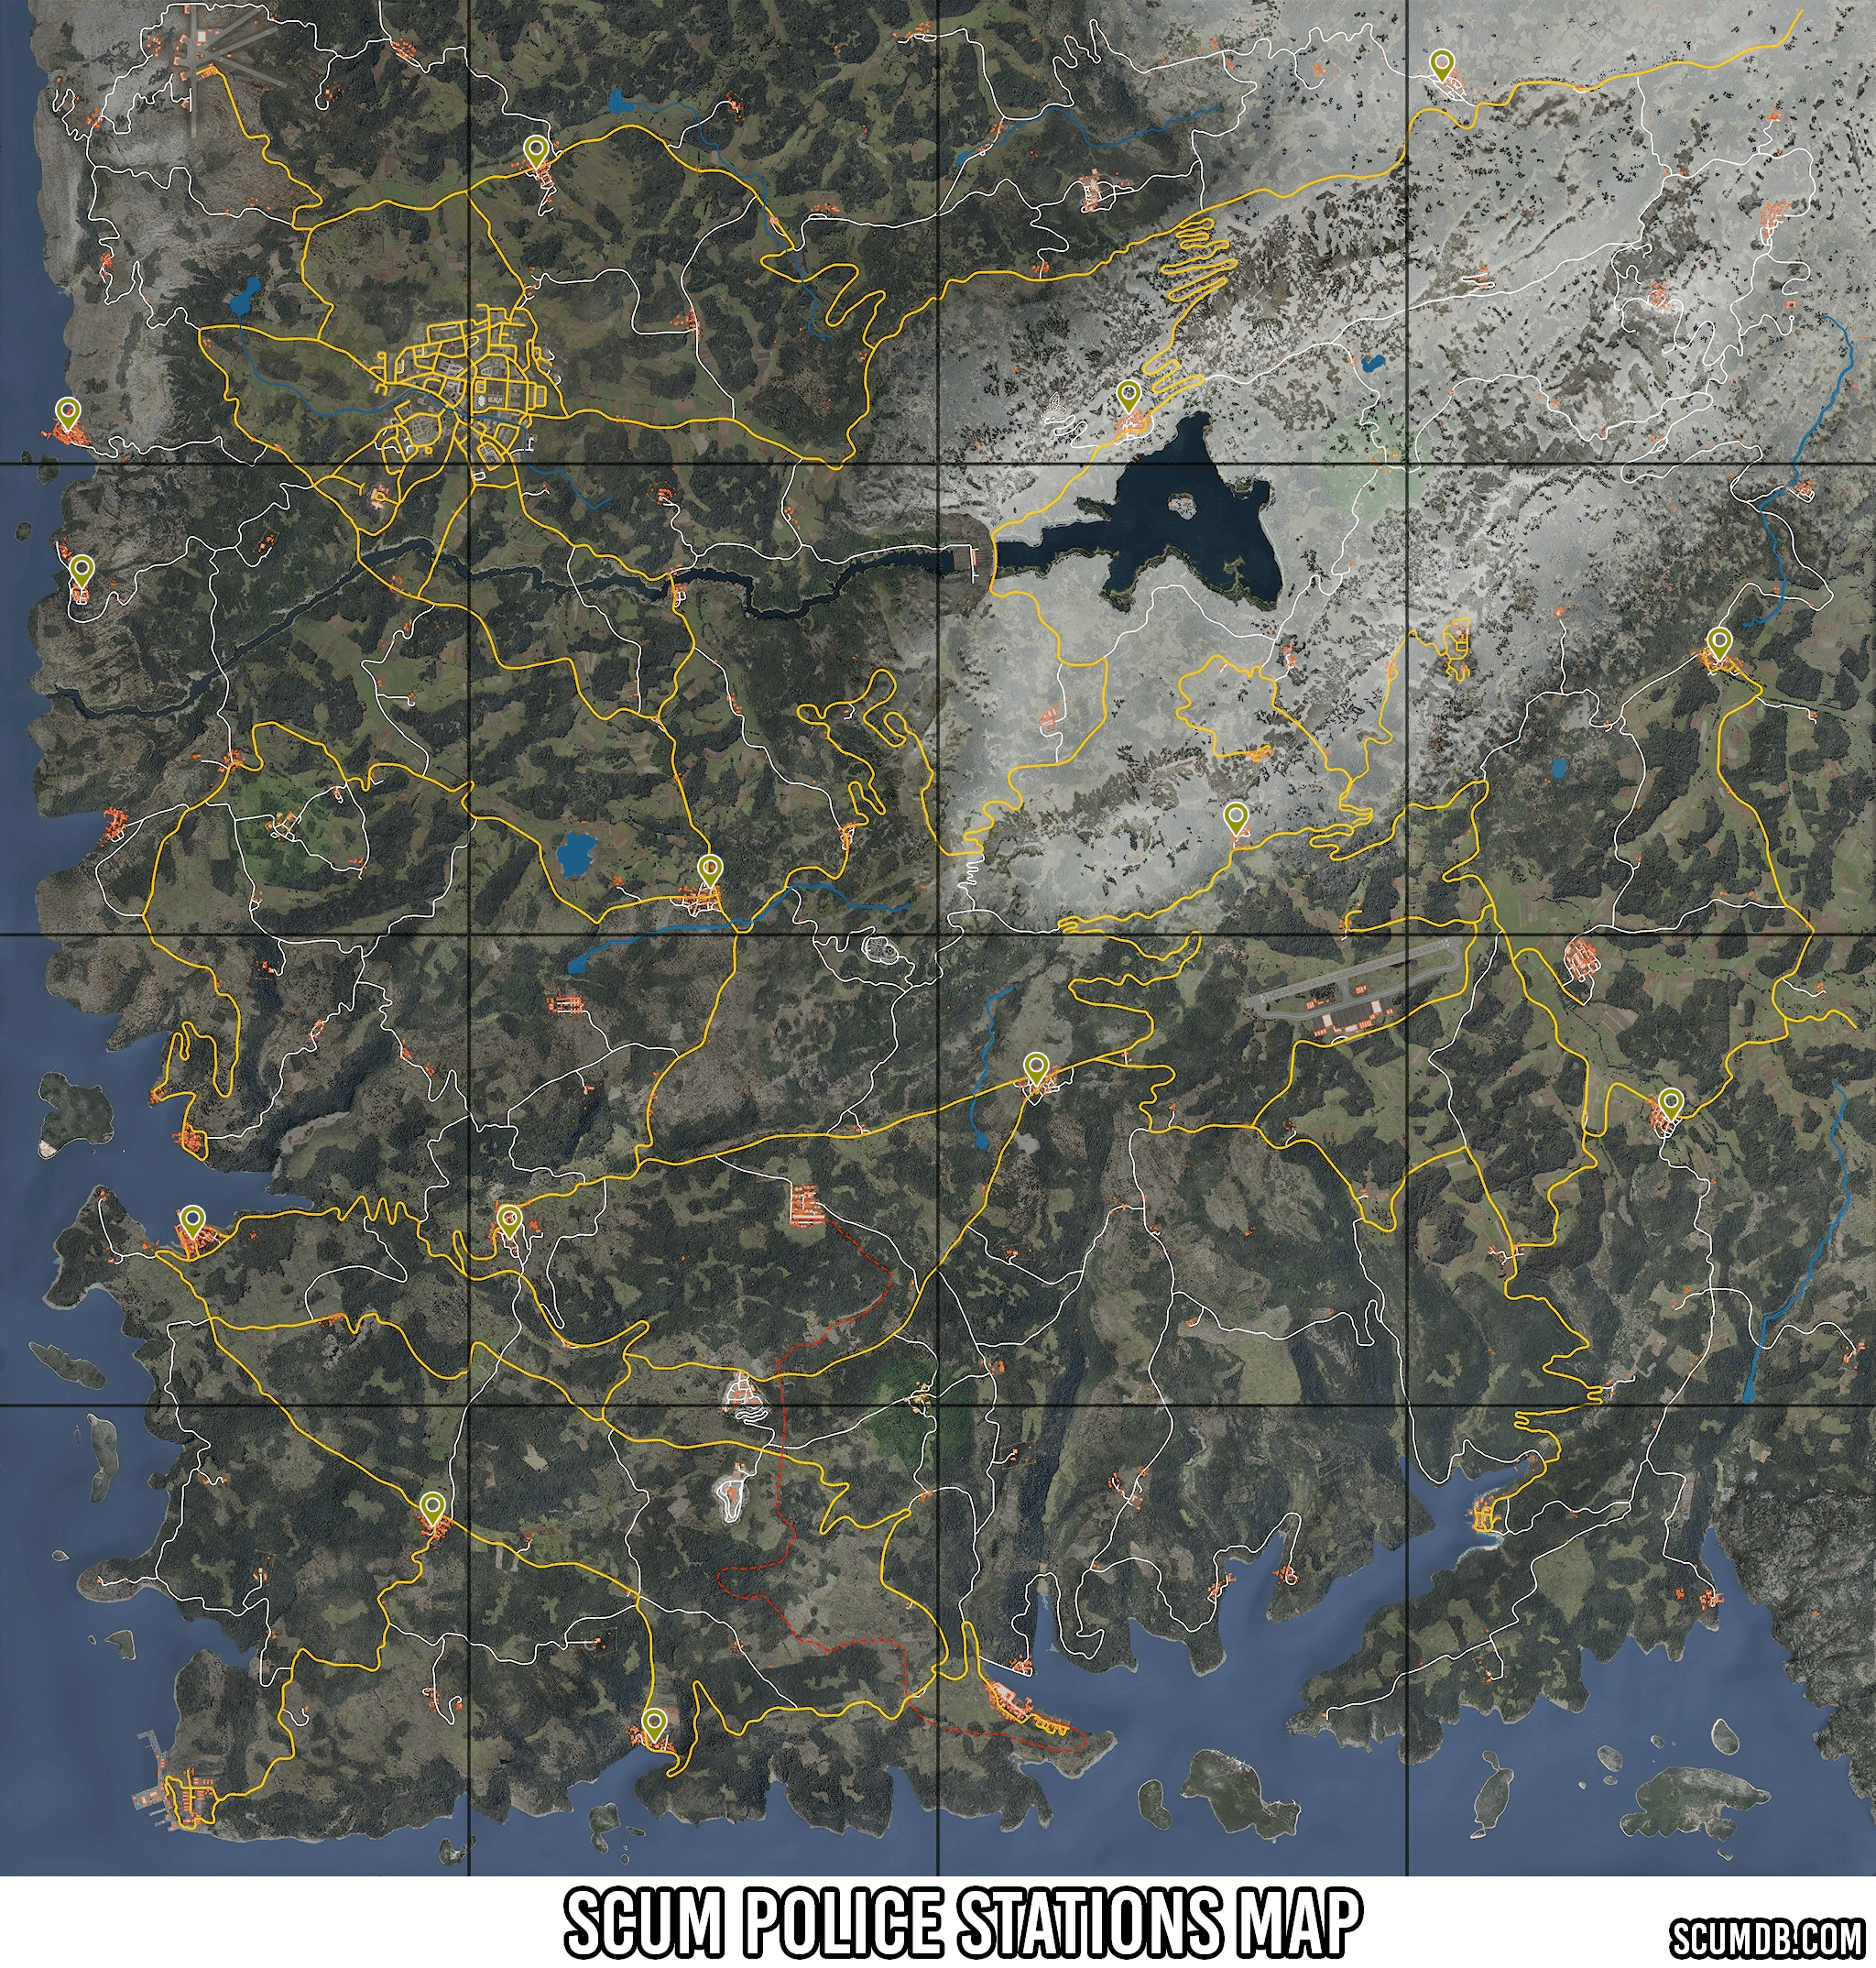 Scum Police Station Locations Map